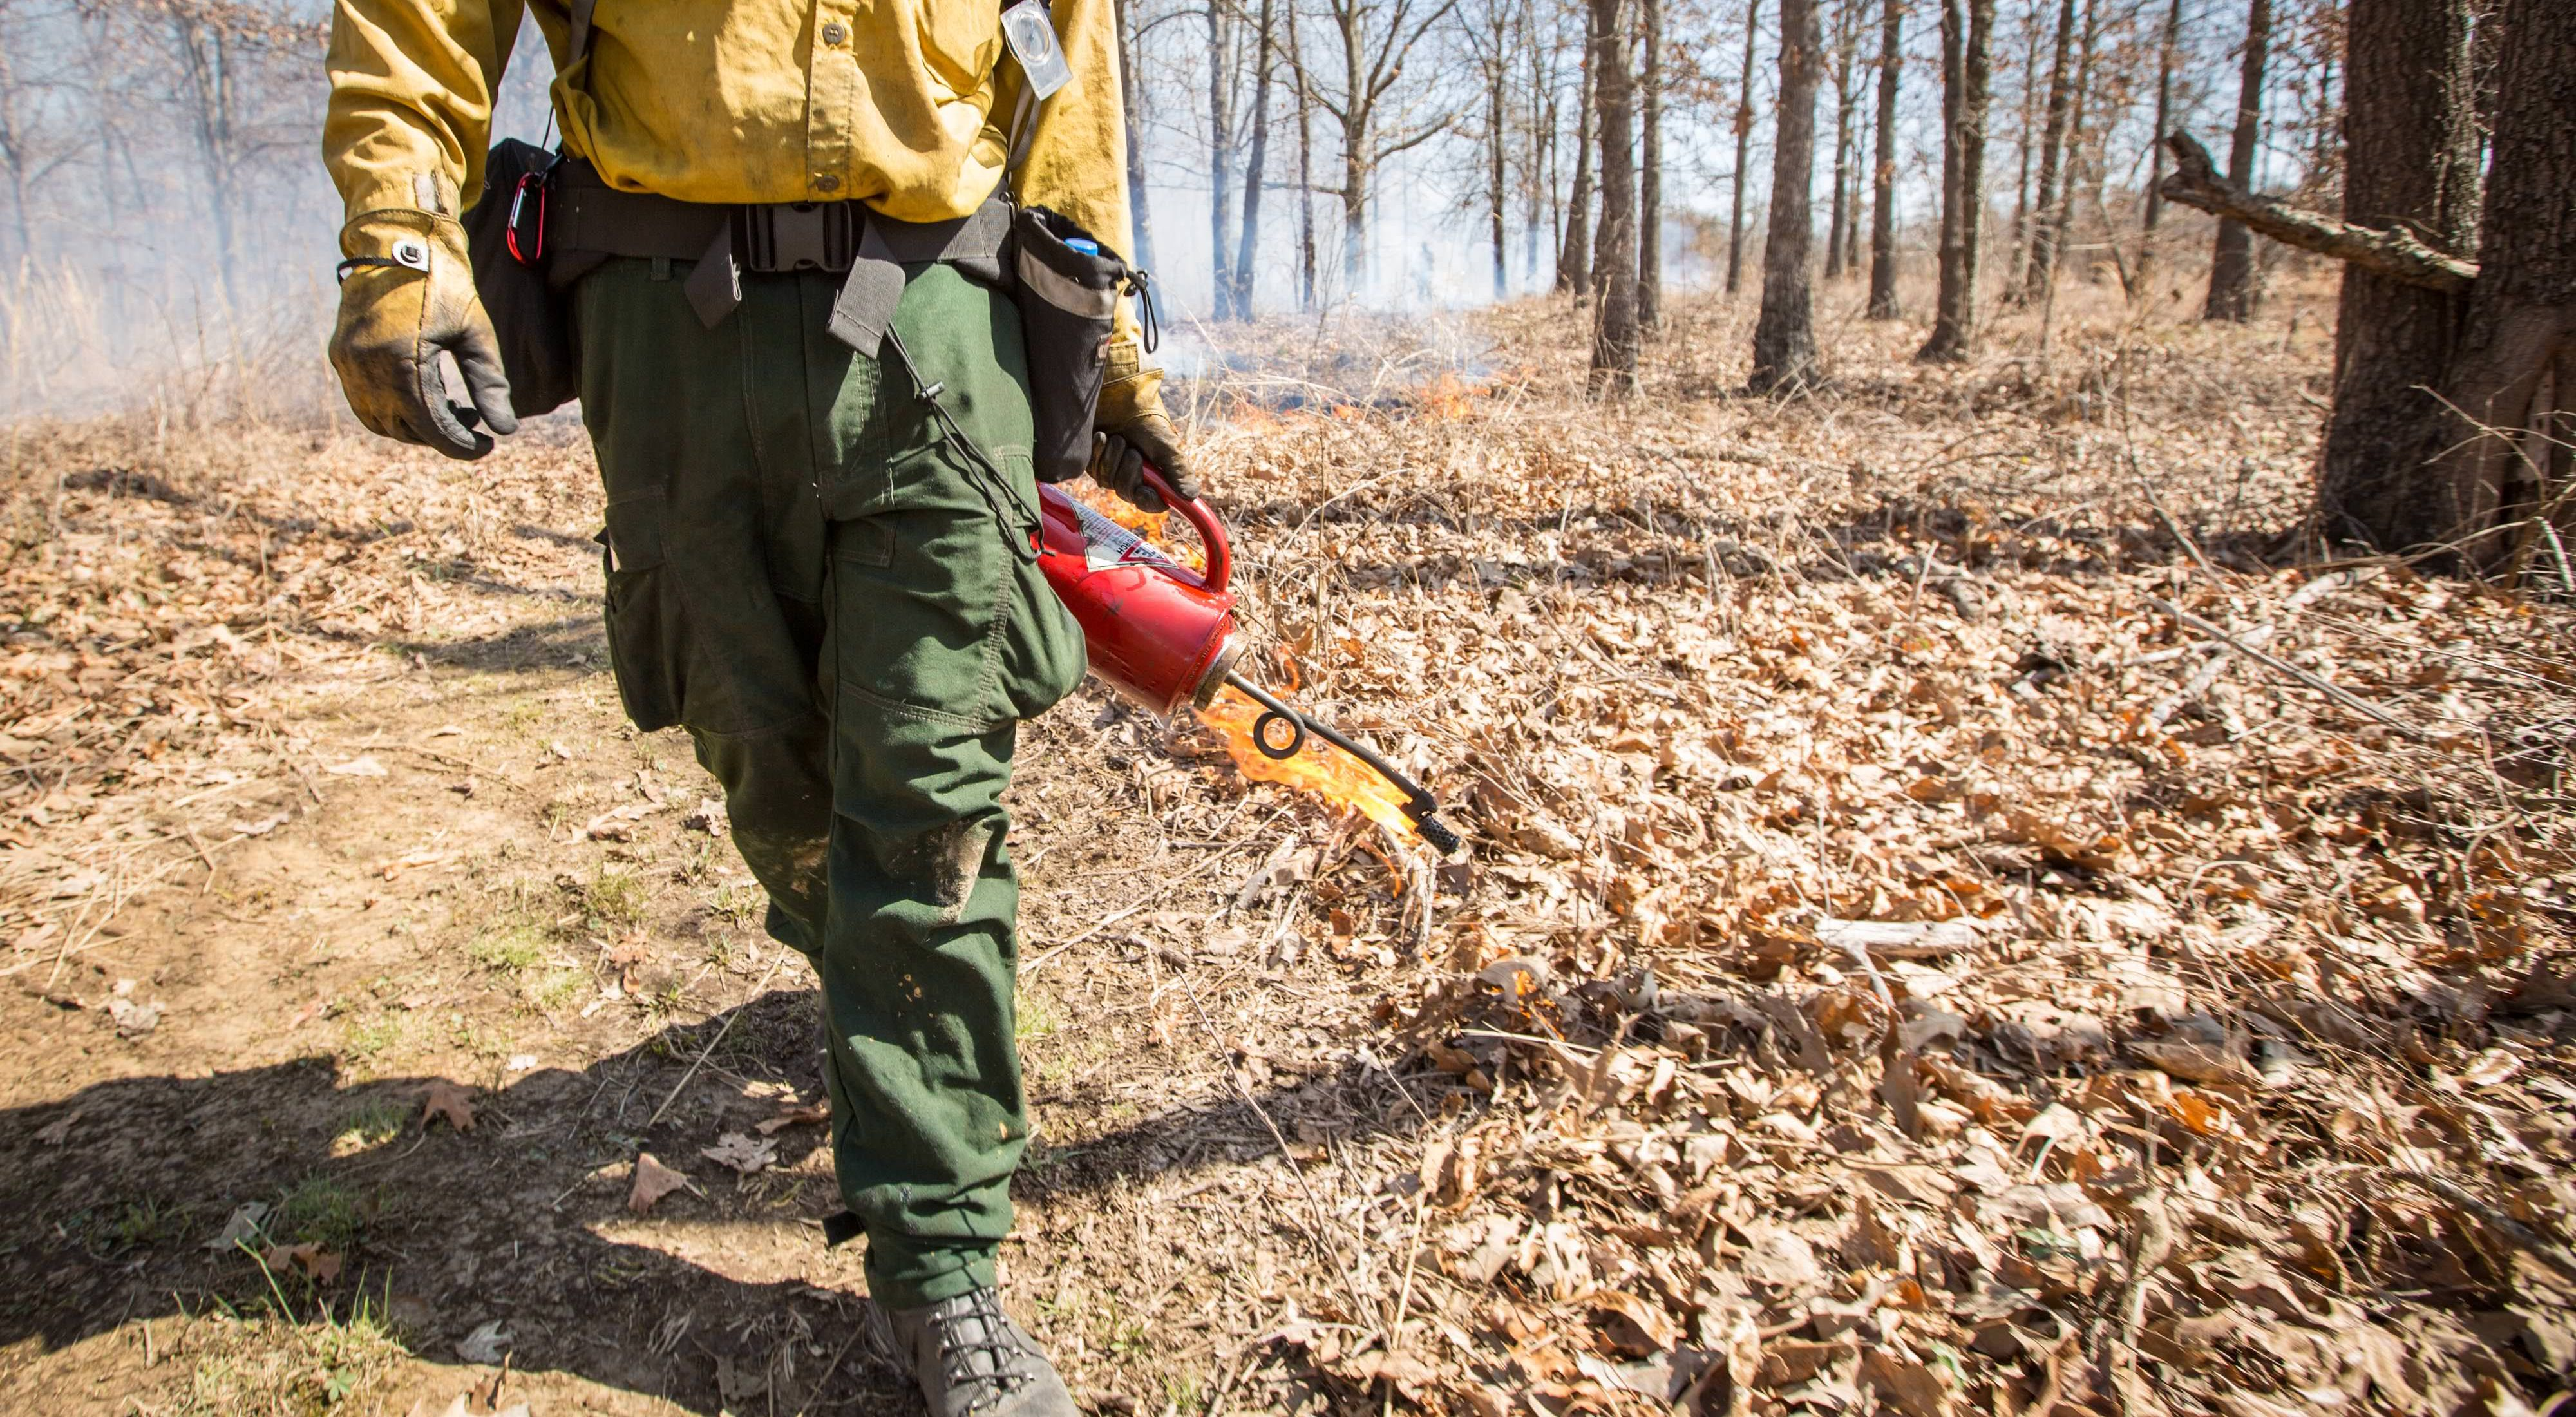 Fire personnel walking with a drip torch.